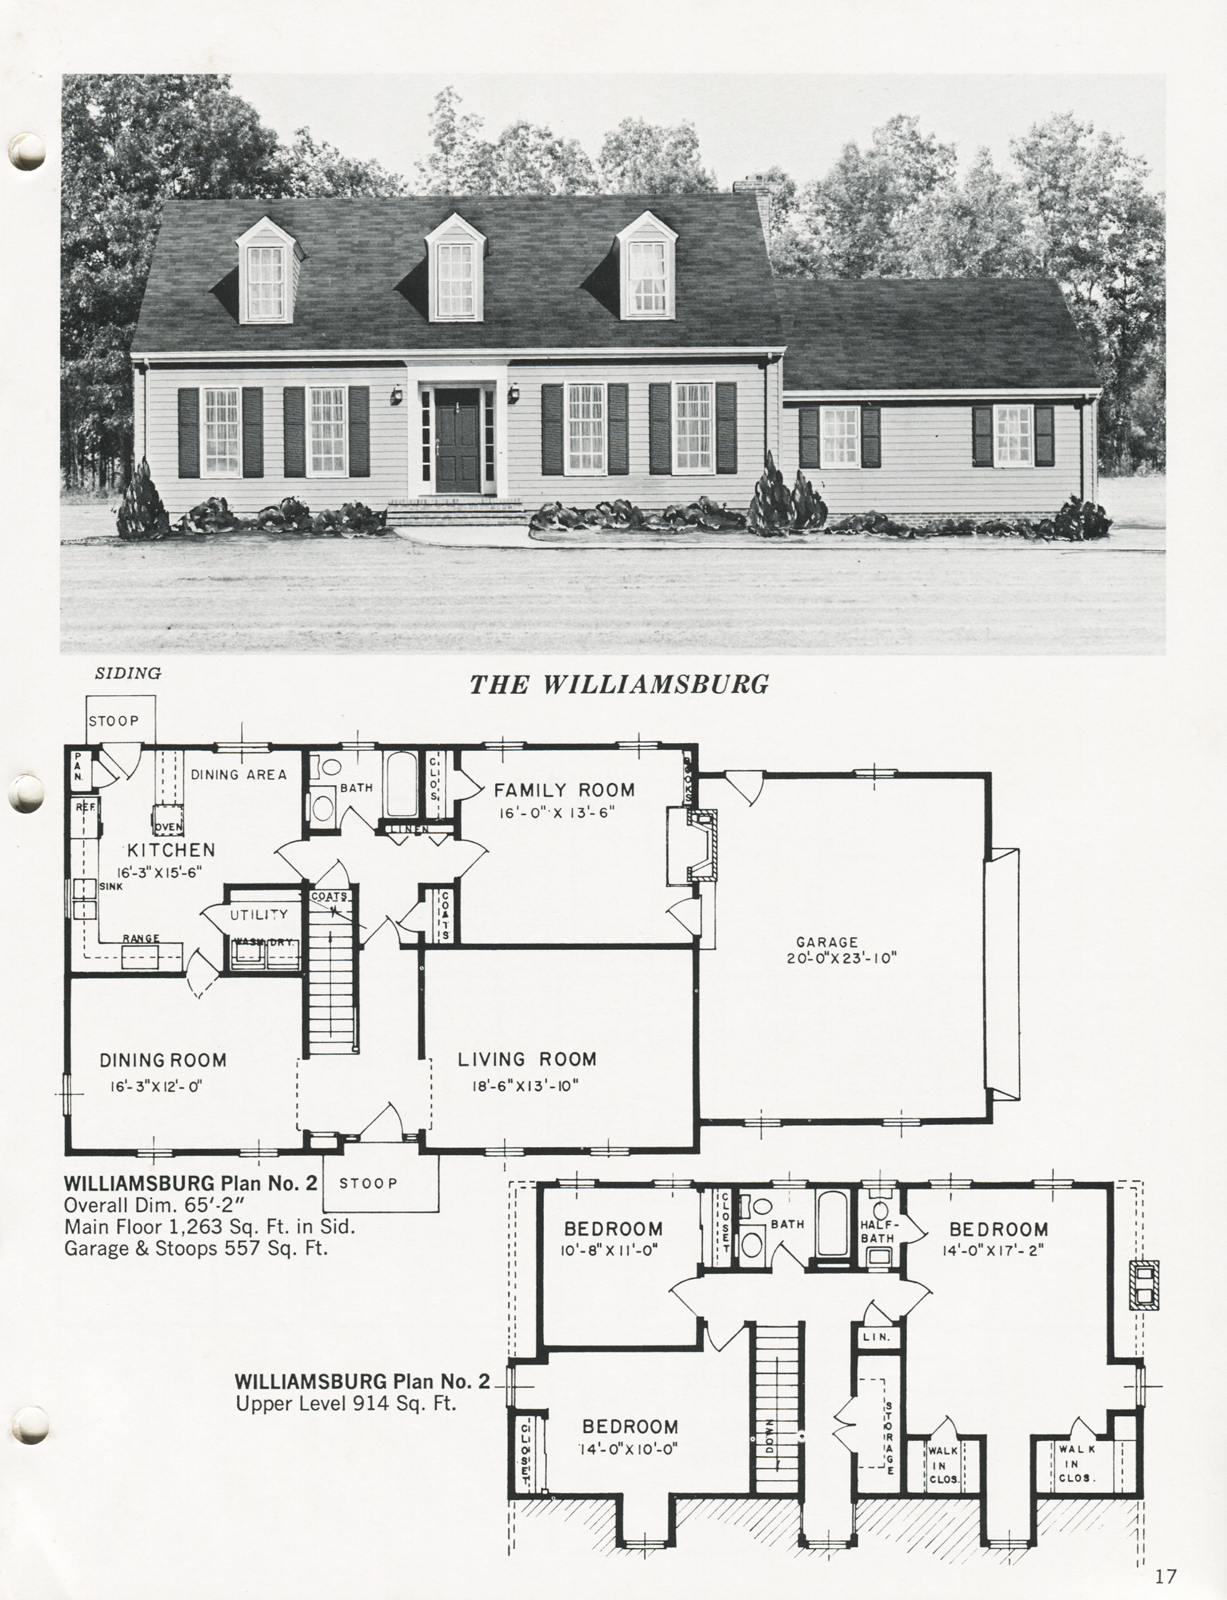 United States C 1970 The Williamsburg A House Based On Those Of Colonial Williamsburg Each Floor Contains Dream House Plans House Plans Cottage House Plans